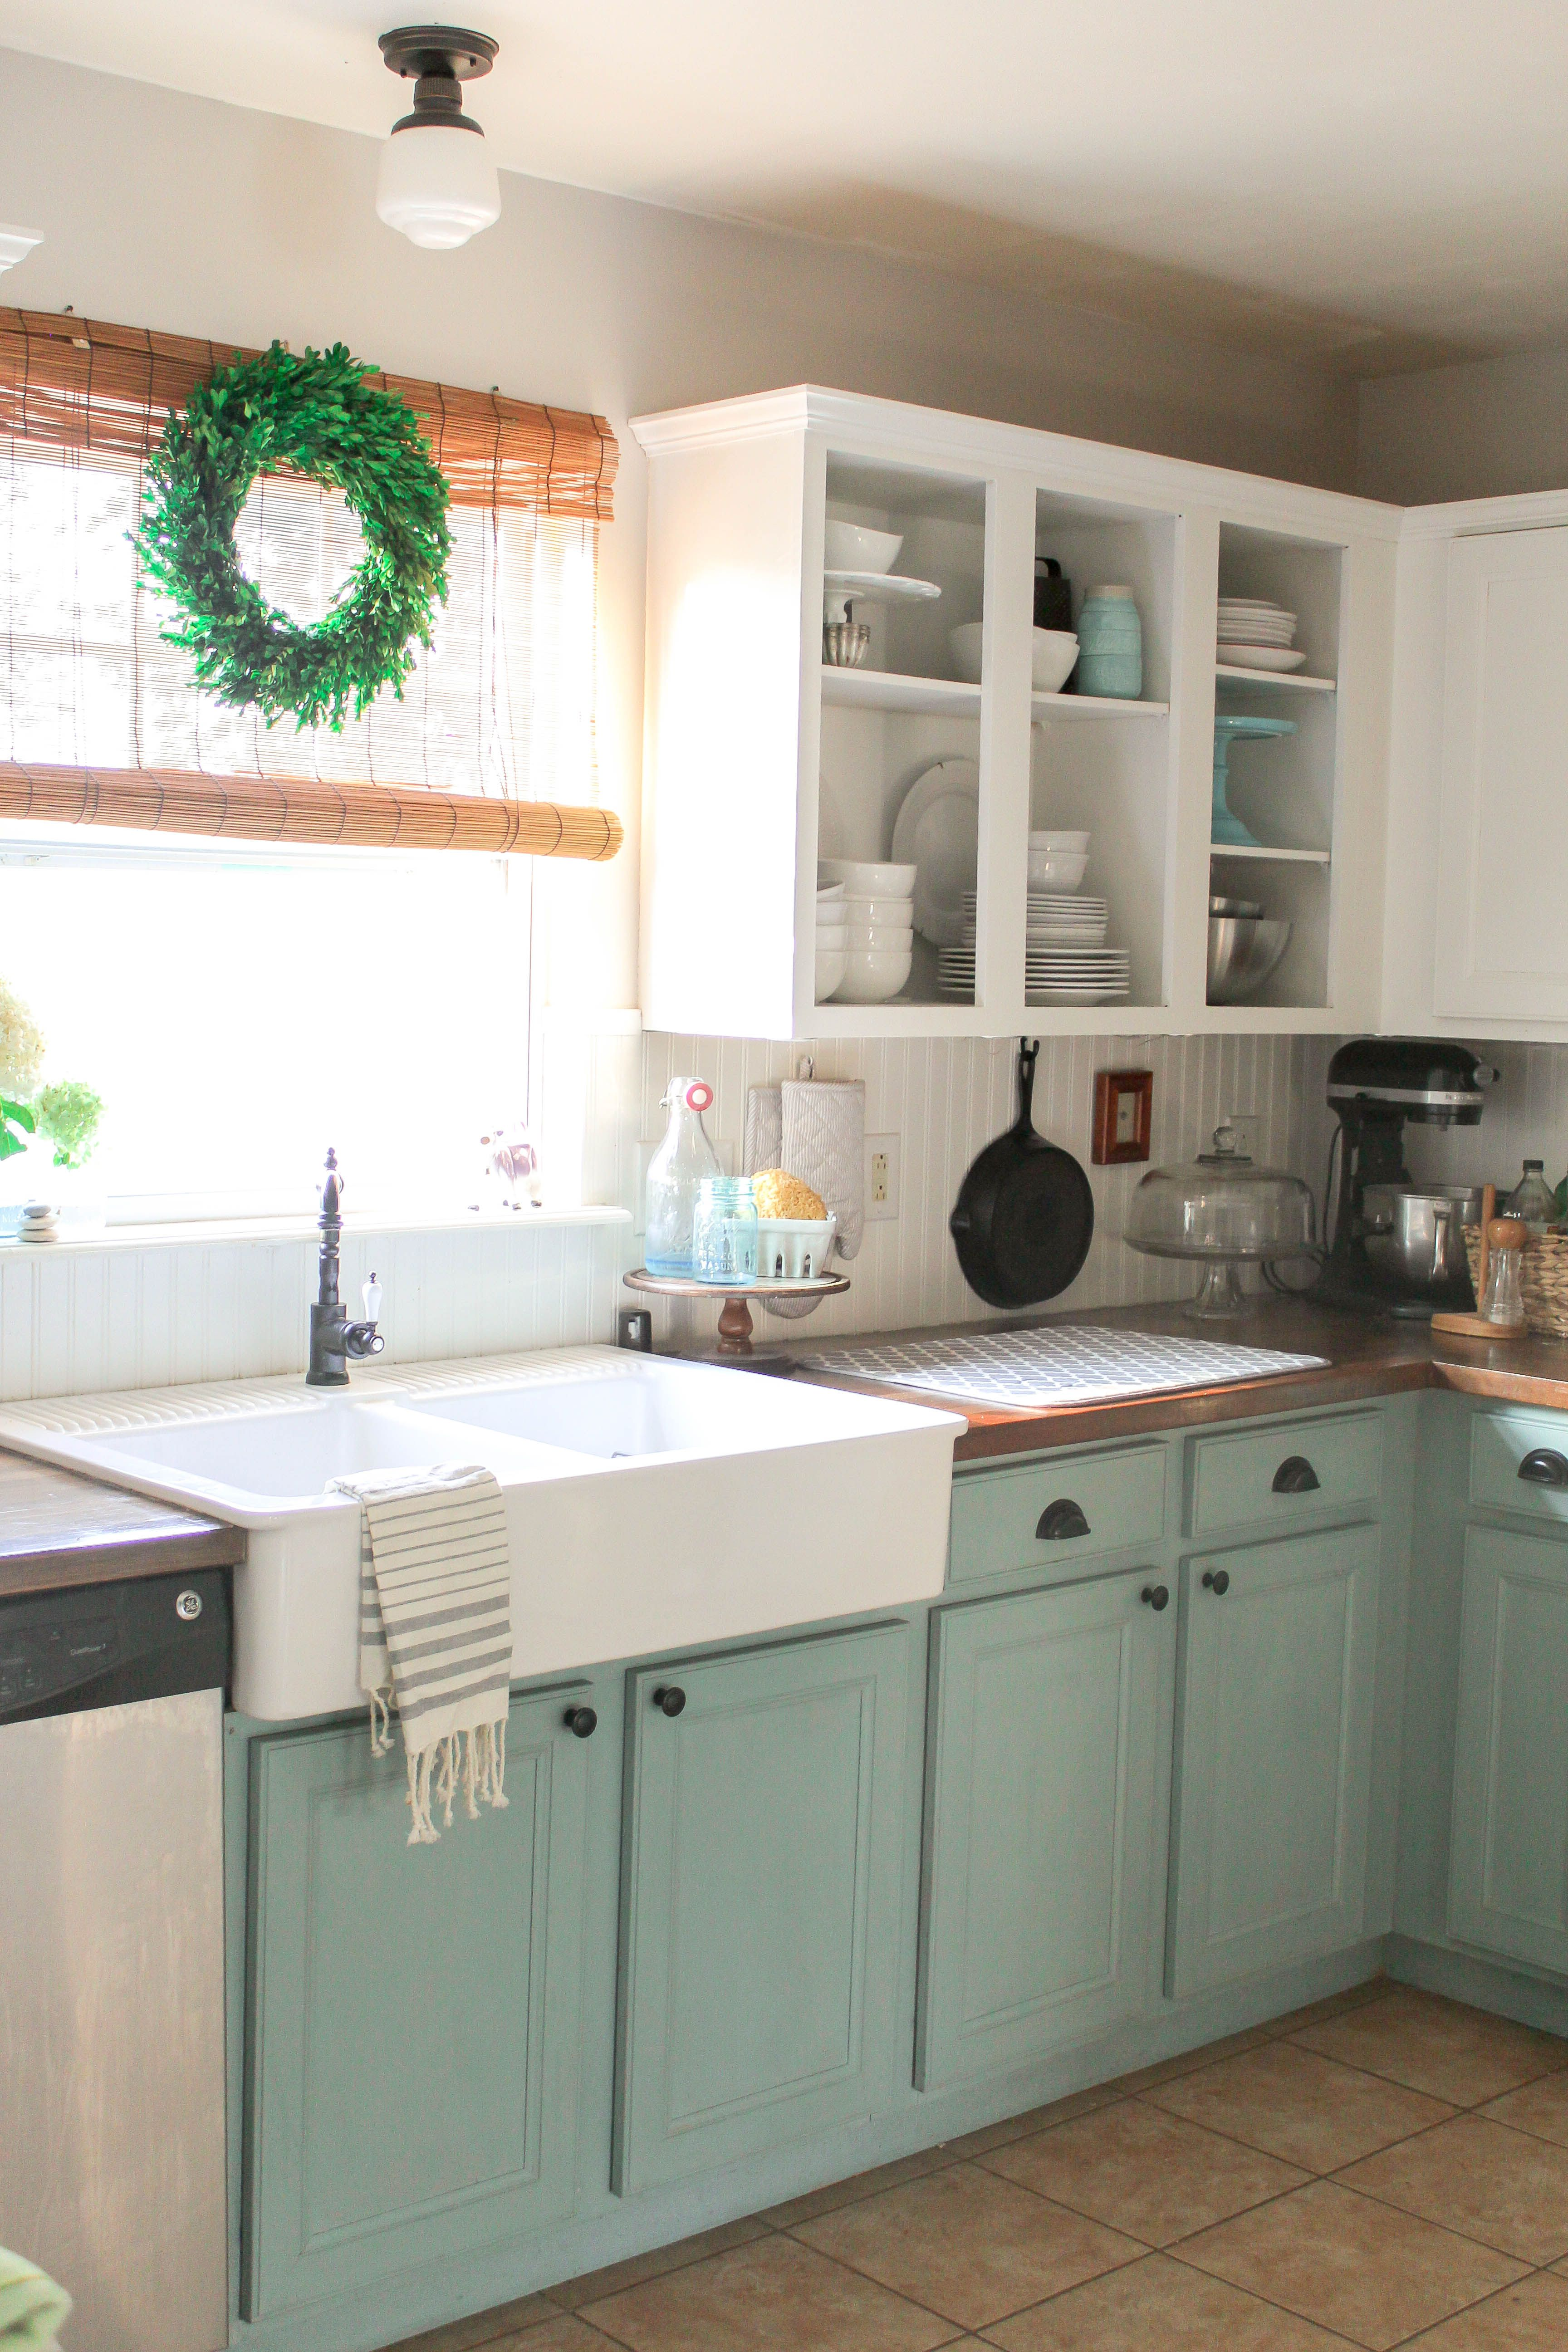 Repaint Kitchen Cabinets Soap Caddy Chalk Painted 2 Years Later Sara Paint Good